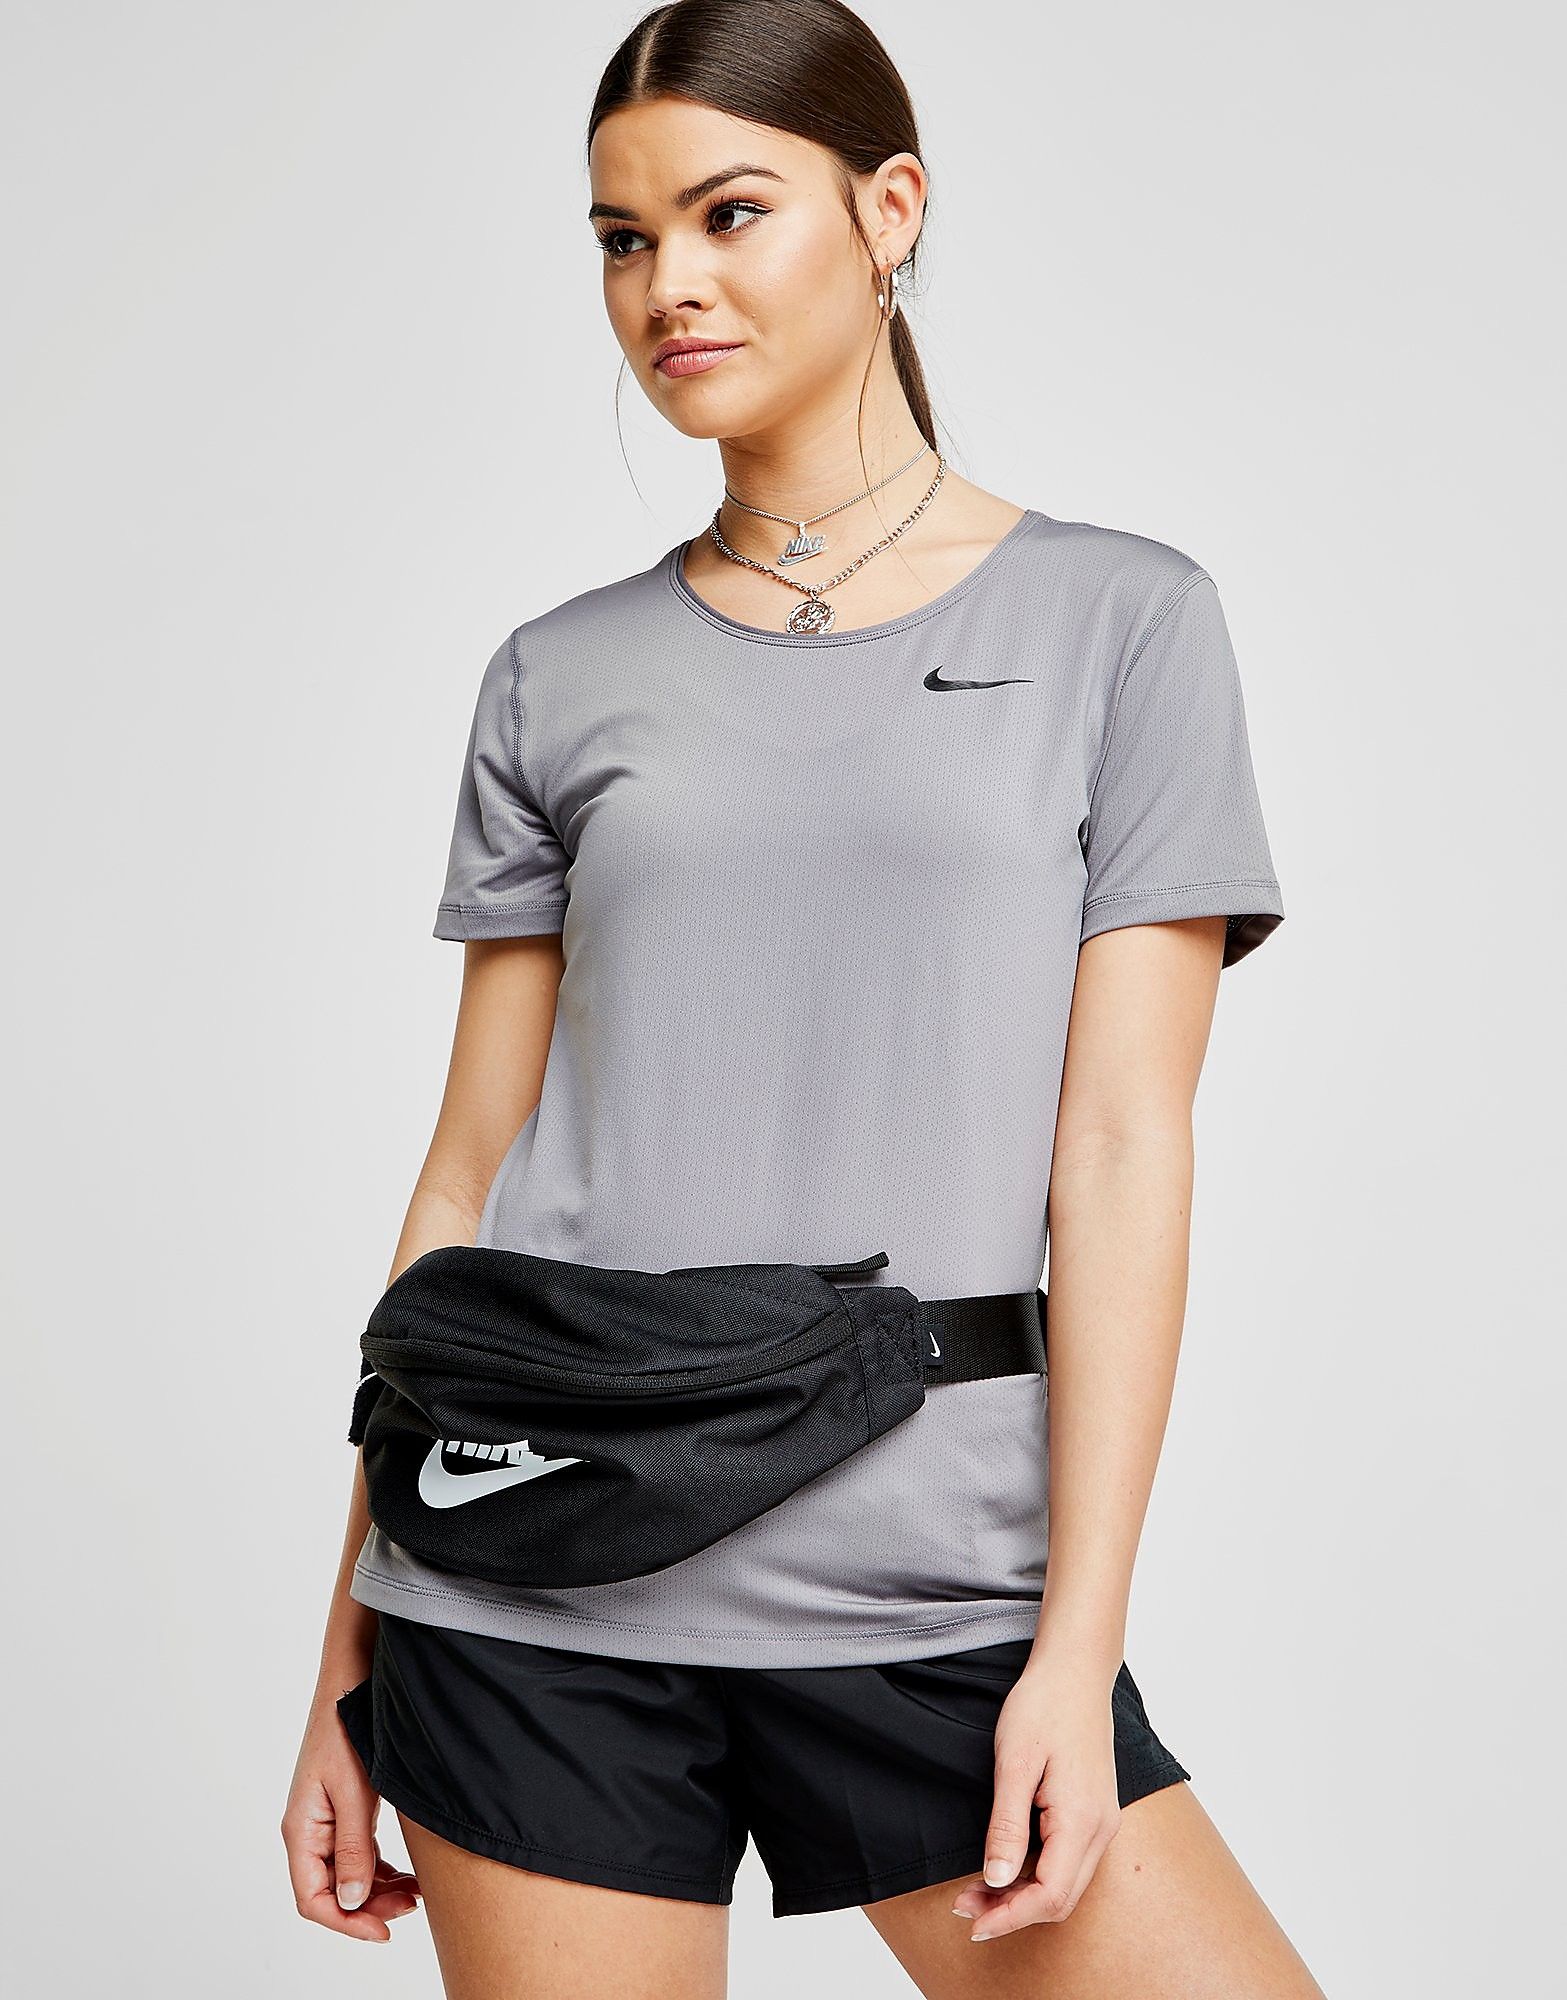 Nike Pro Short Sleeve Training T-Shirt